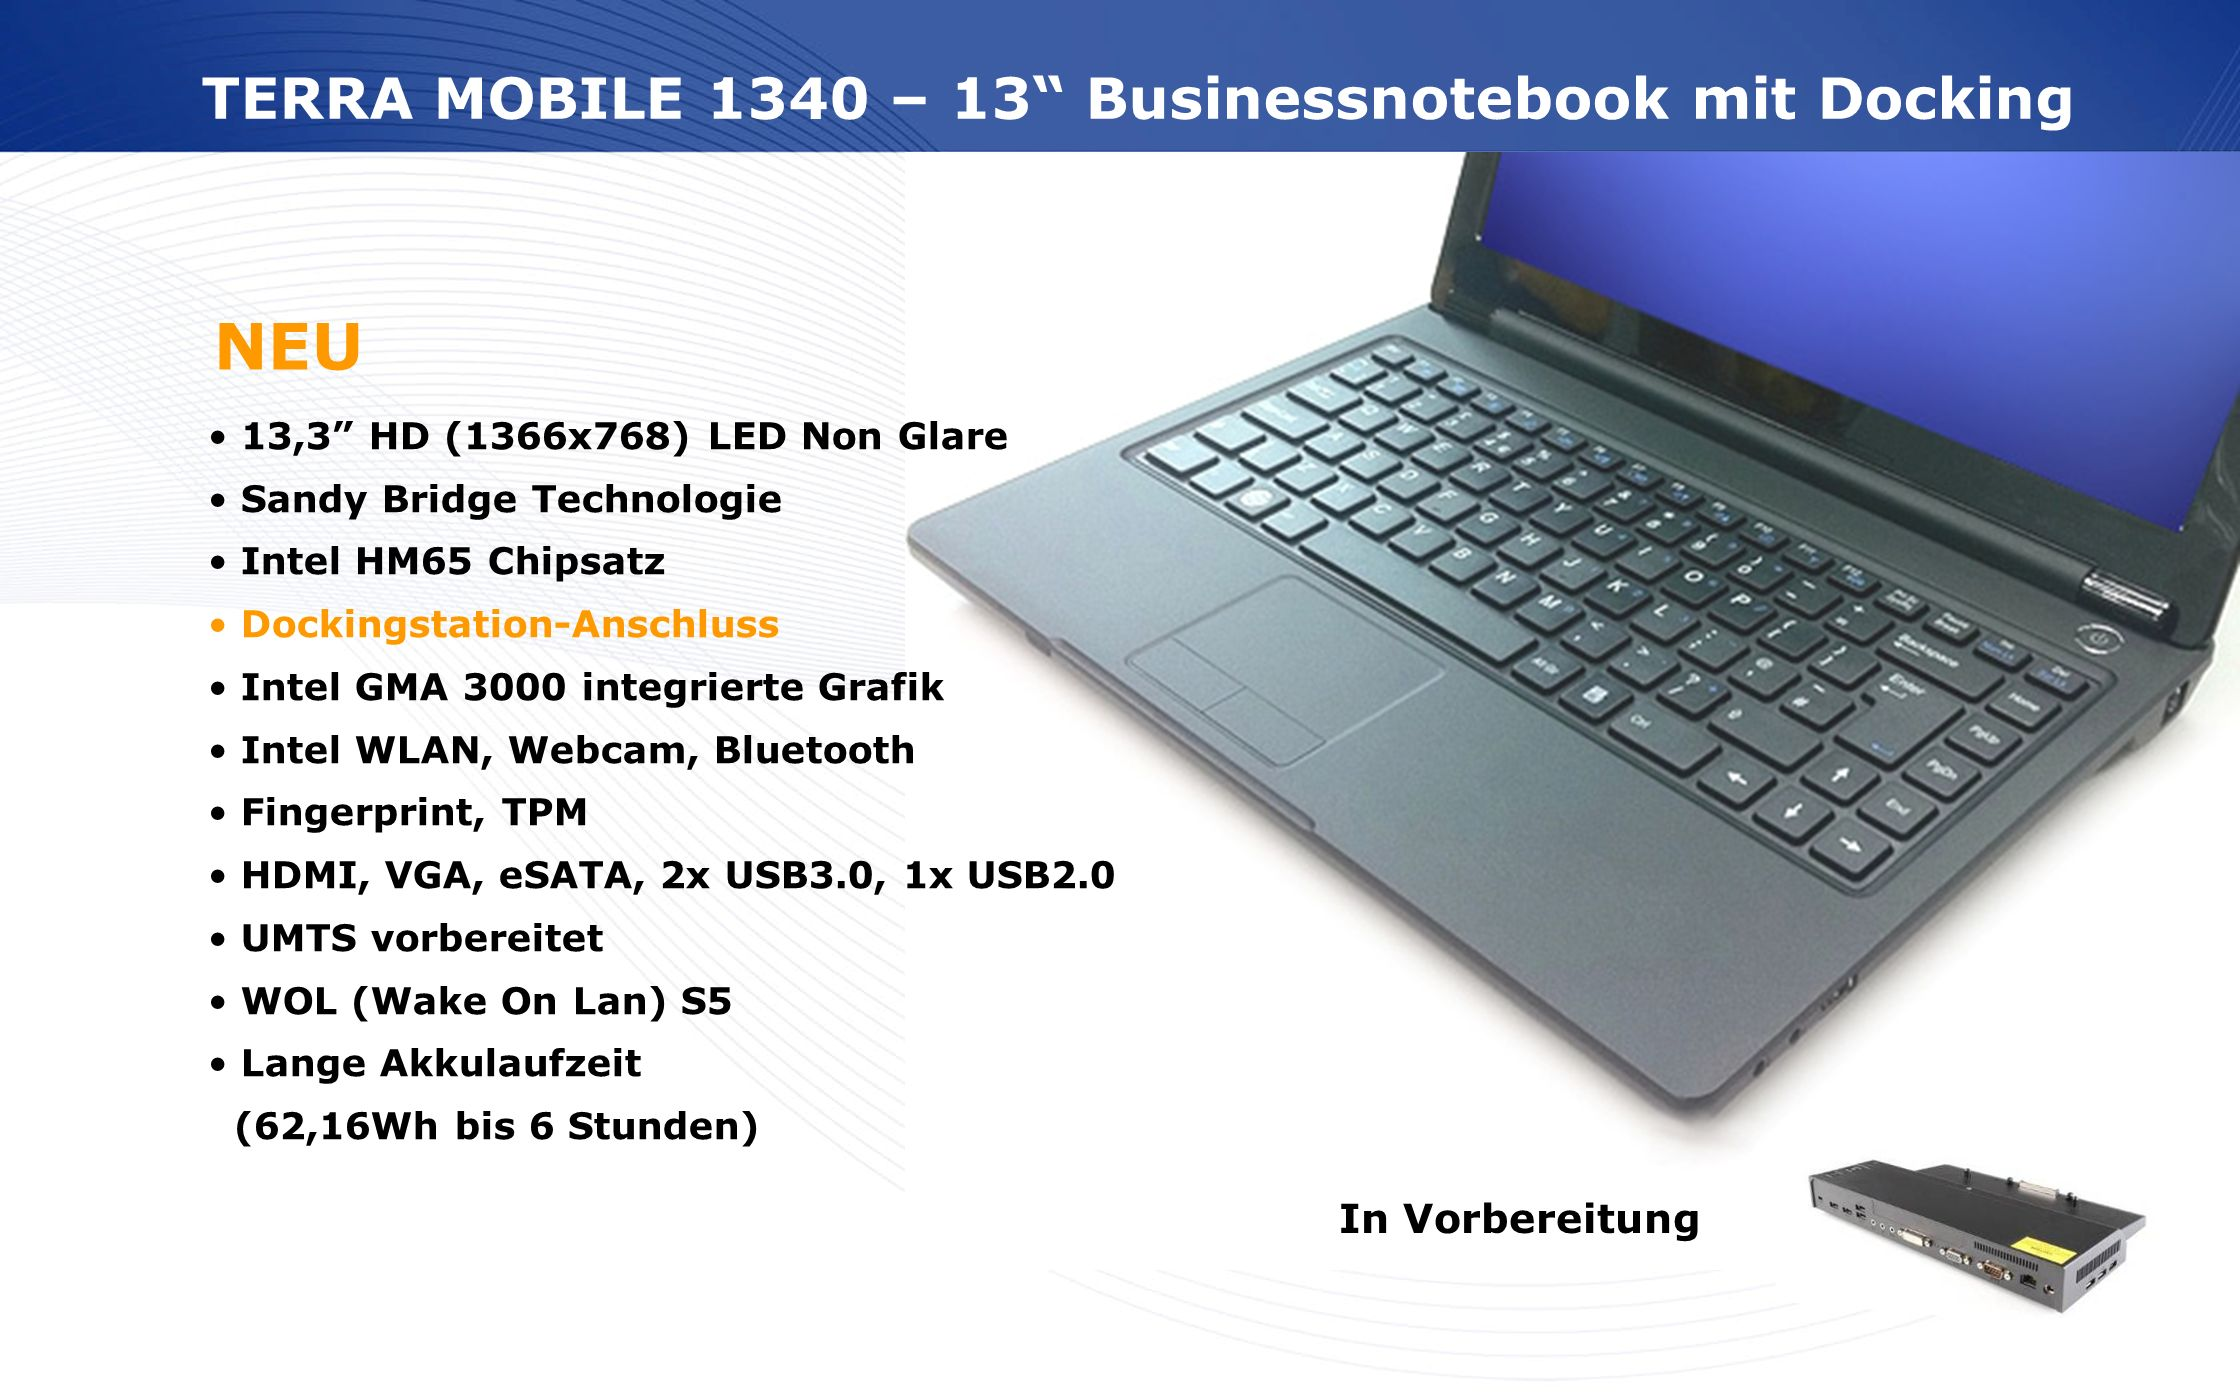 NEU TERRA MOBILE 1340 – 13 Businessnotebook mit Docking